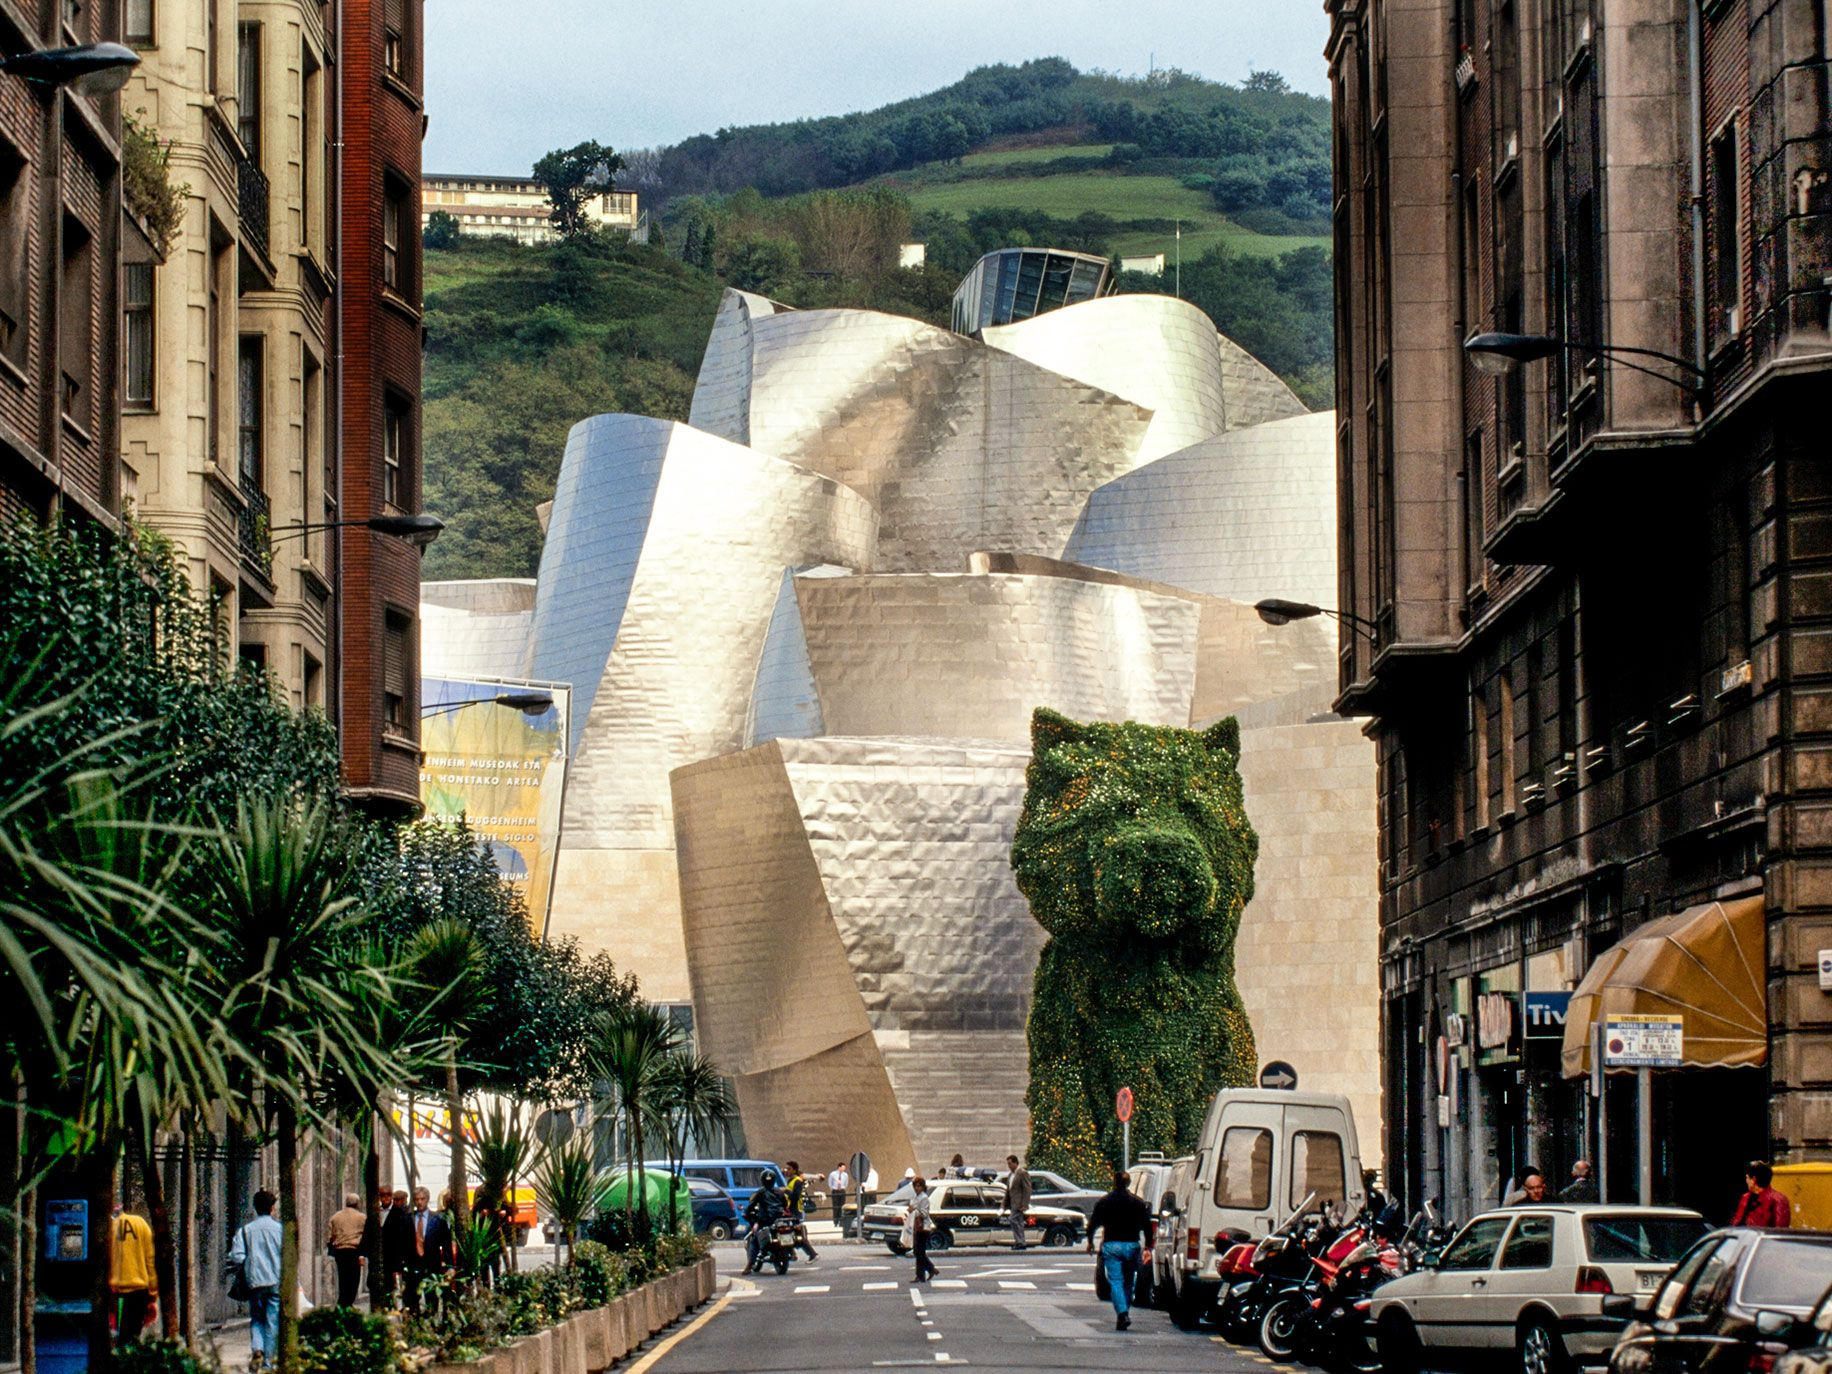 Gehry's famous Guggenheim Museum Bilbao in Spain, opened in 1997.